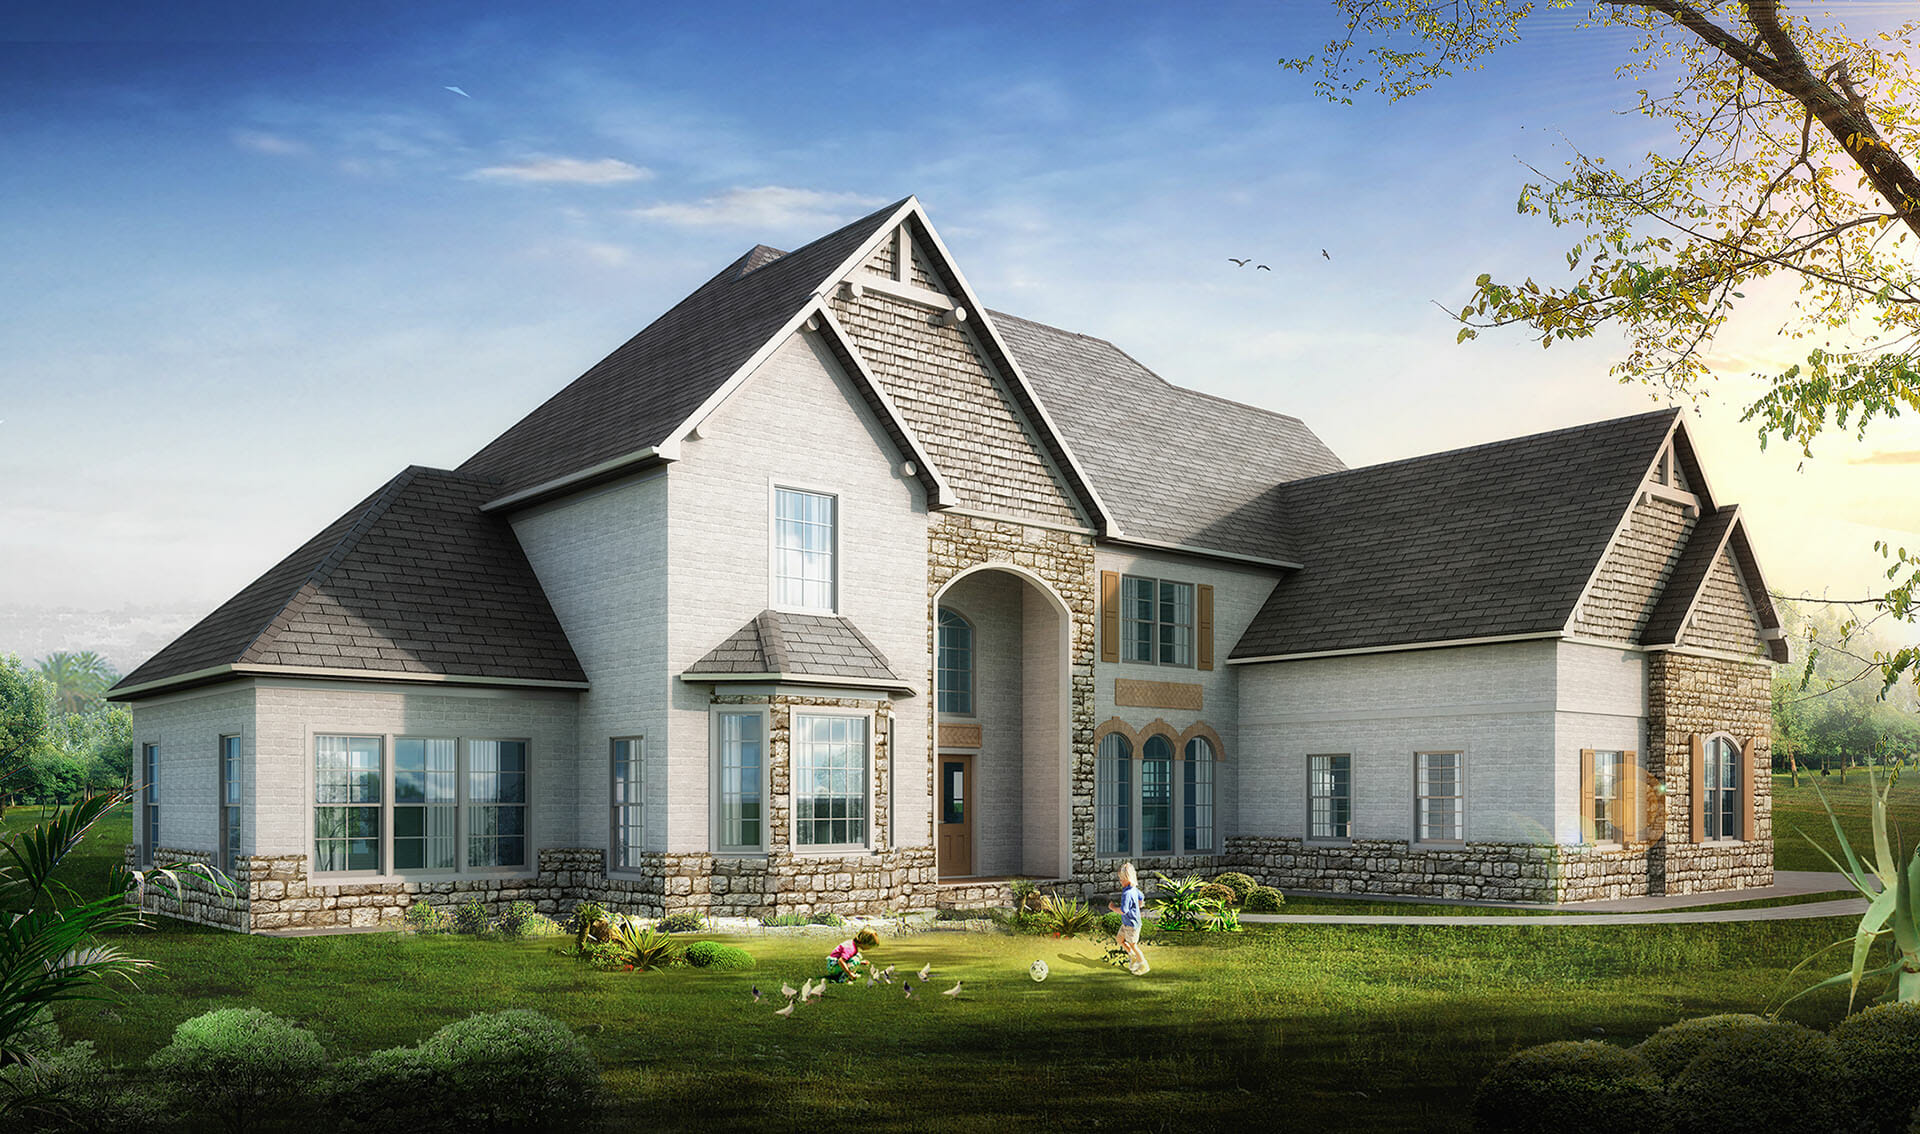 Golden Rule Builders - Yosemite Lifestyles Model Home